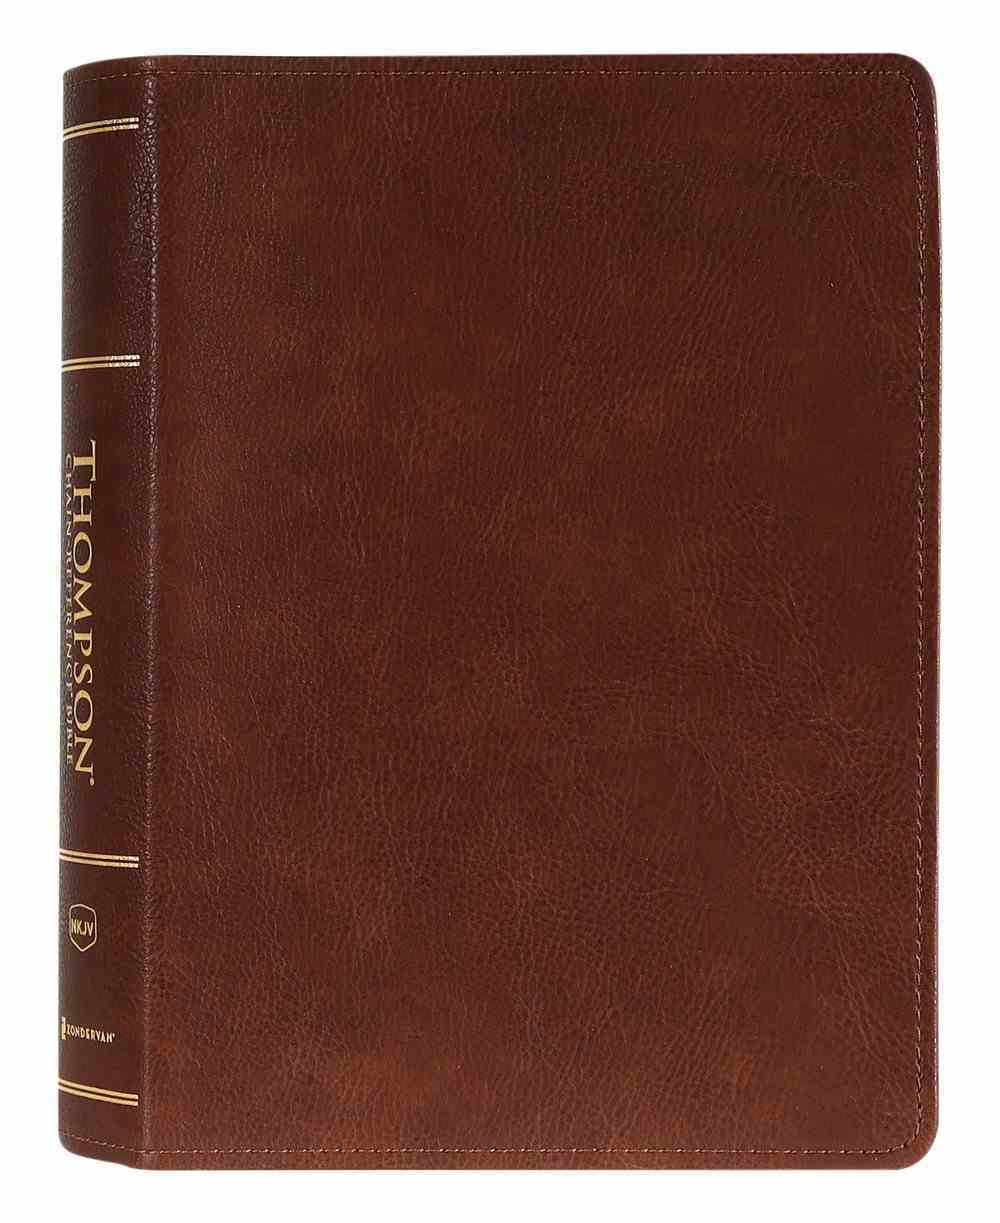 NKJV Thompson Chain-Reference Bible Brown (Red Letter Edition) Premium Imitation Leather